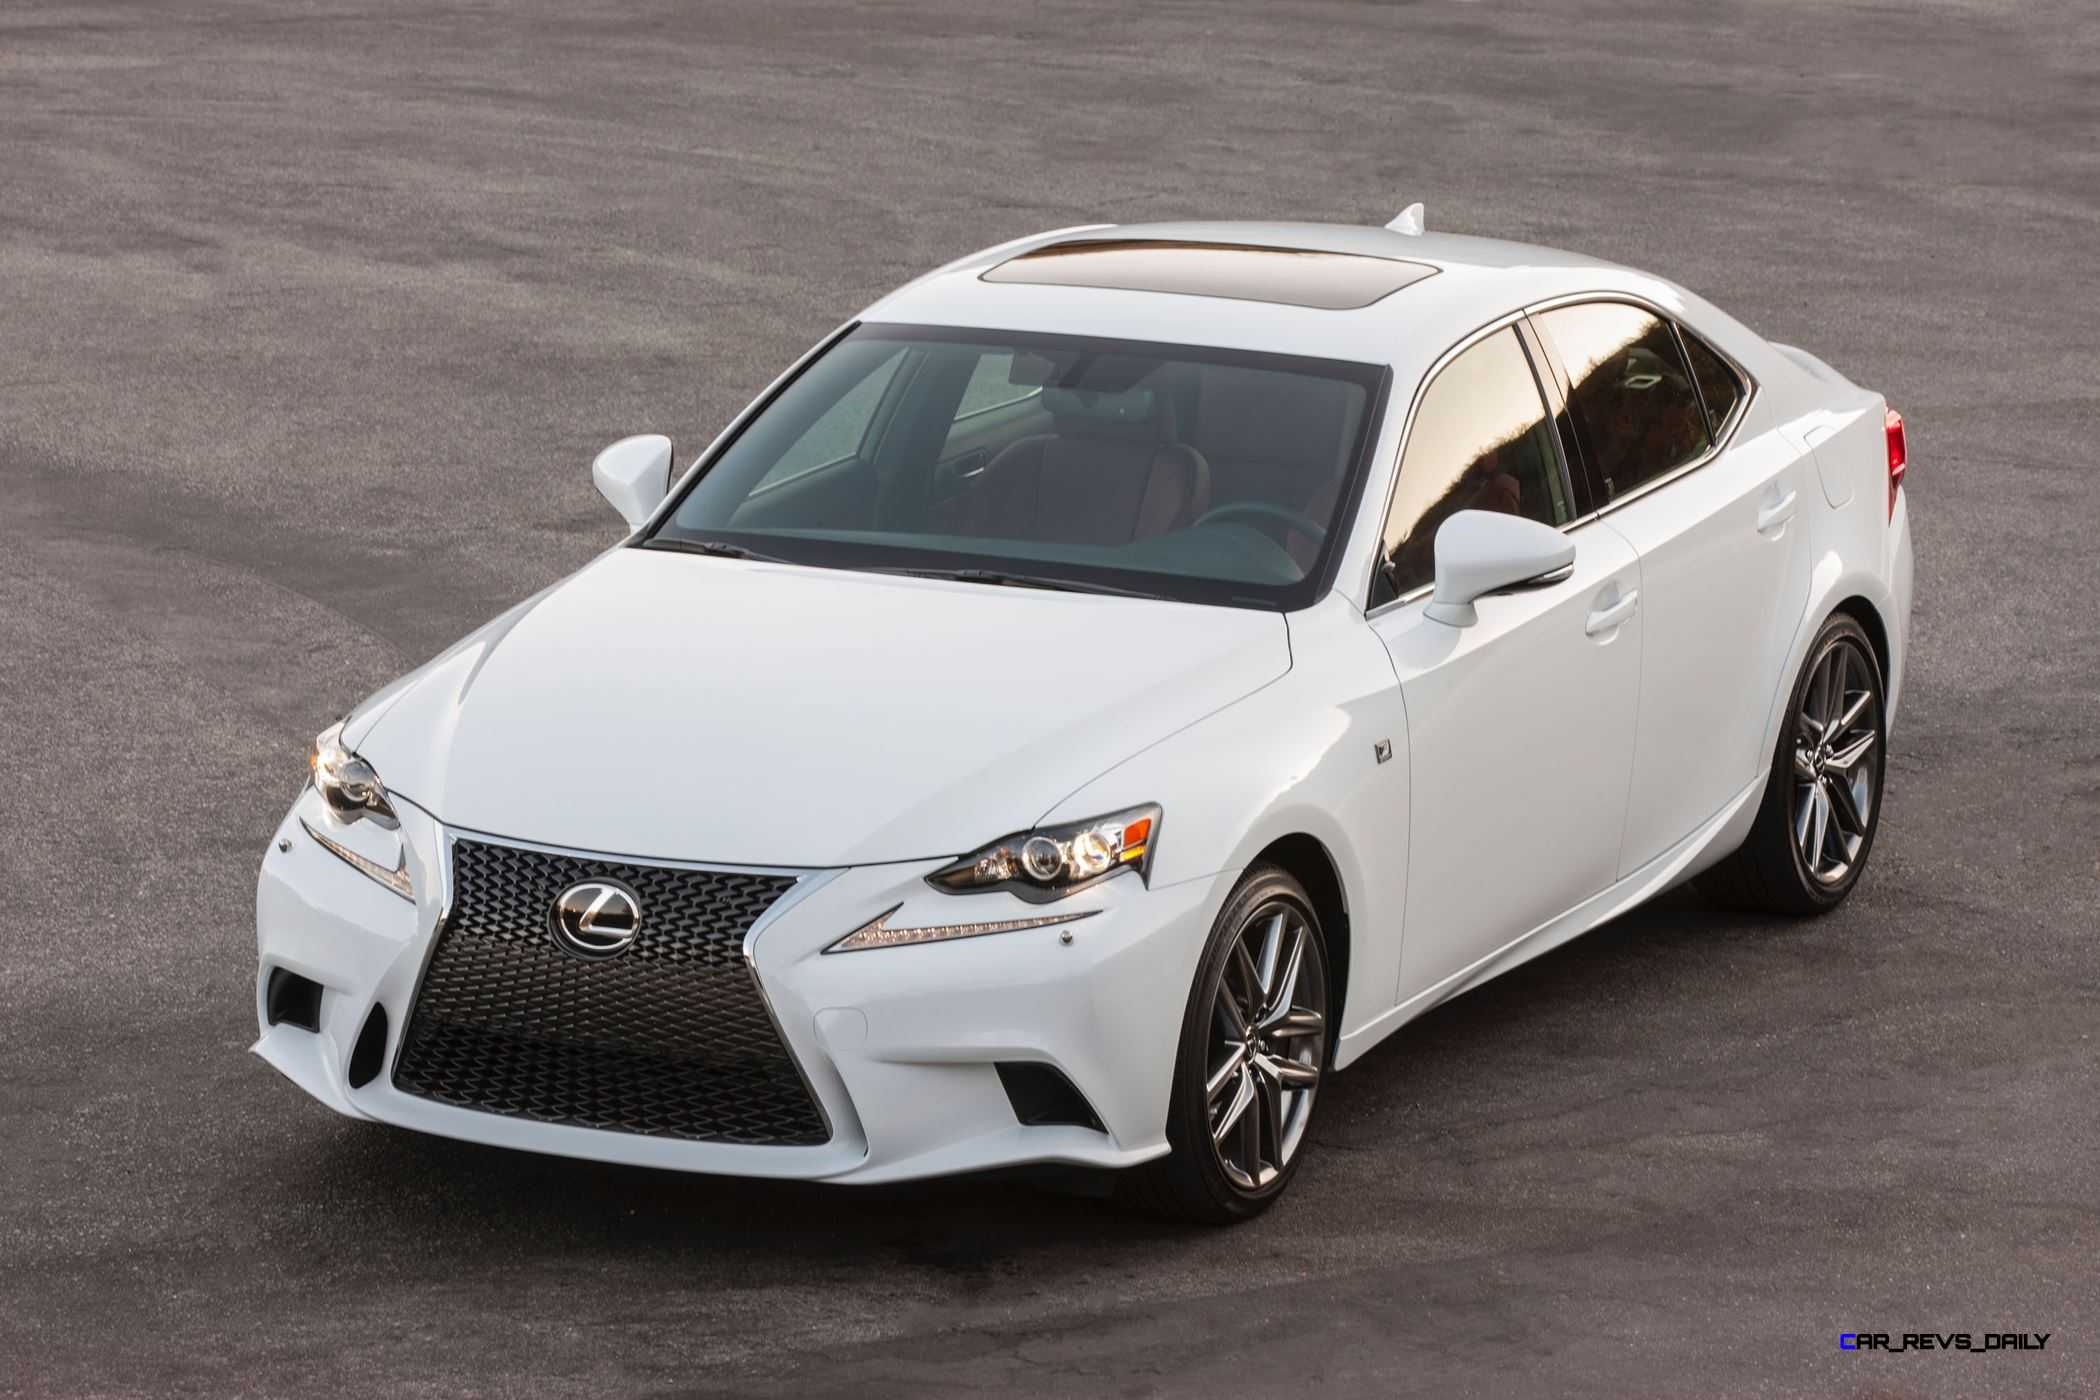 2016 lexus is200t and is300 awd join refreshed range with f sport packs. Black Bedroom Furniture Sets. Home Design Ideas